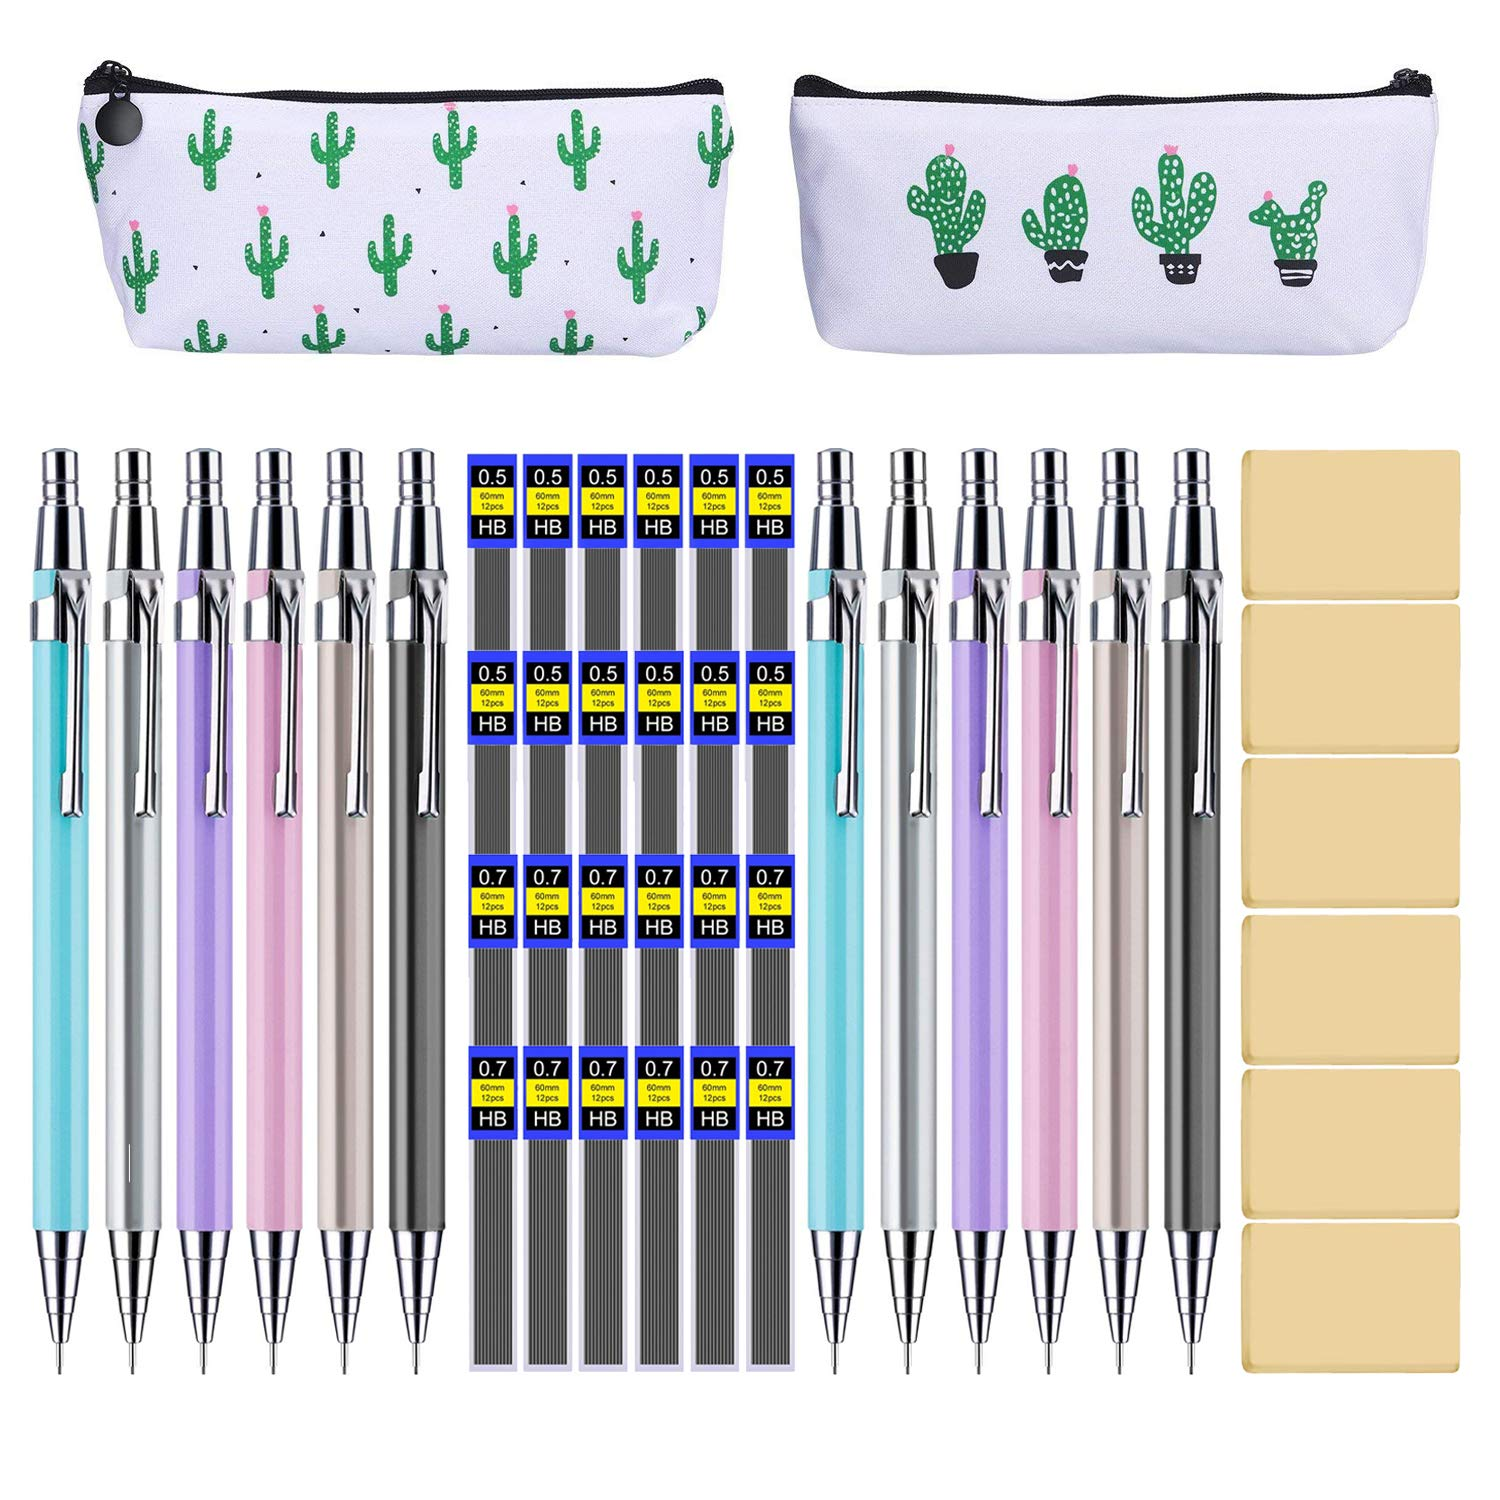 44 Metal Mechanical Pencil Set, Muhuyi 12 Pieces Drafting Mechanical Pens and 24 Tubes Lead Refills with 6 Pack Erasers and 2 Pencil Case (0.5mm 0.7mm) by Muhuyi (Image #1)